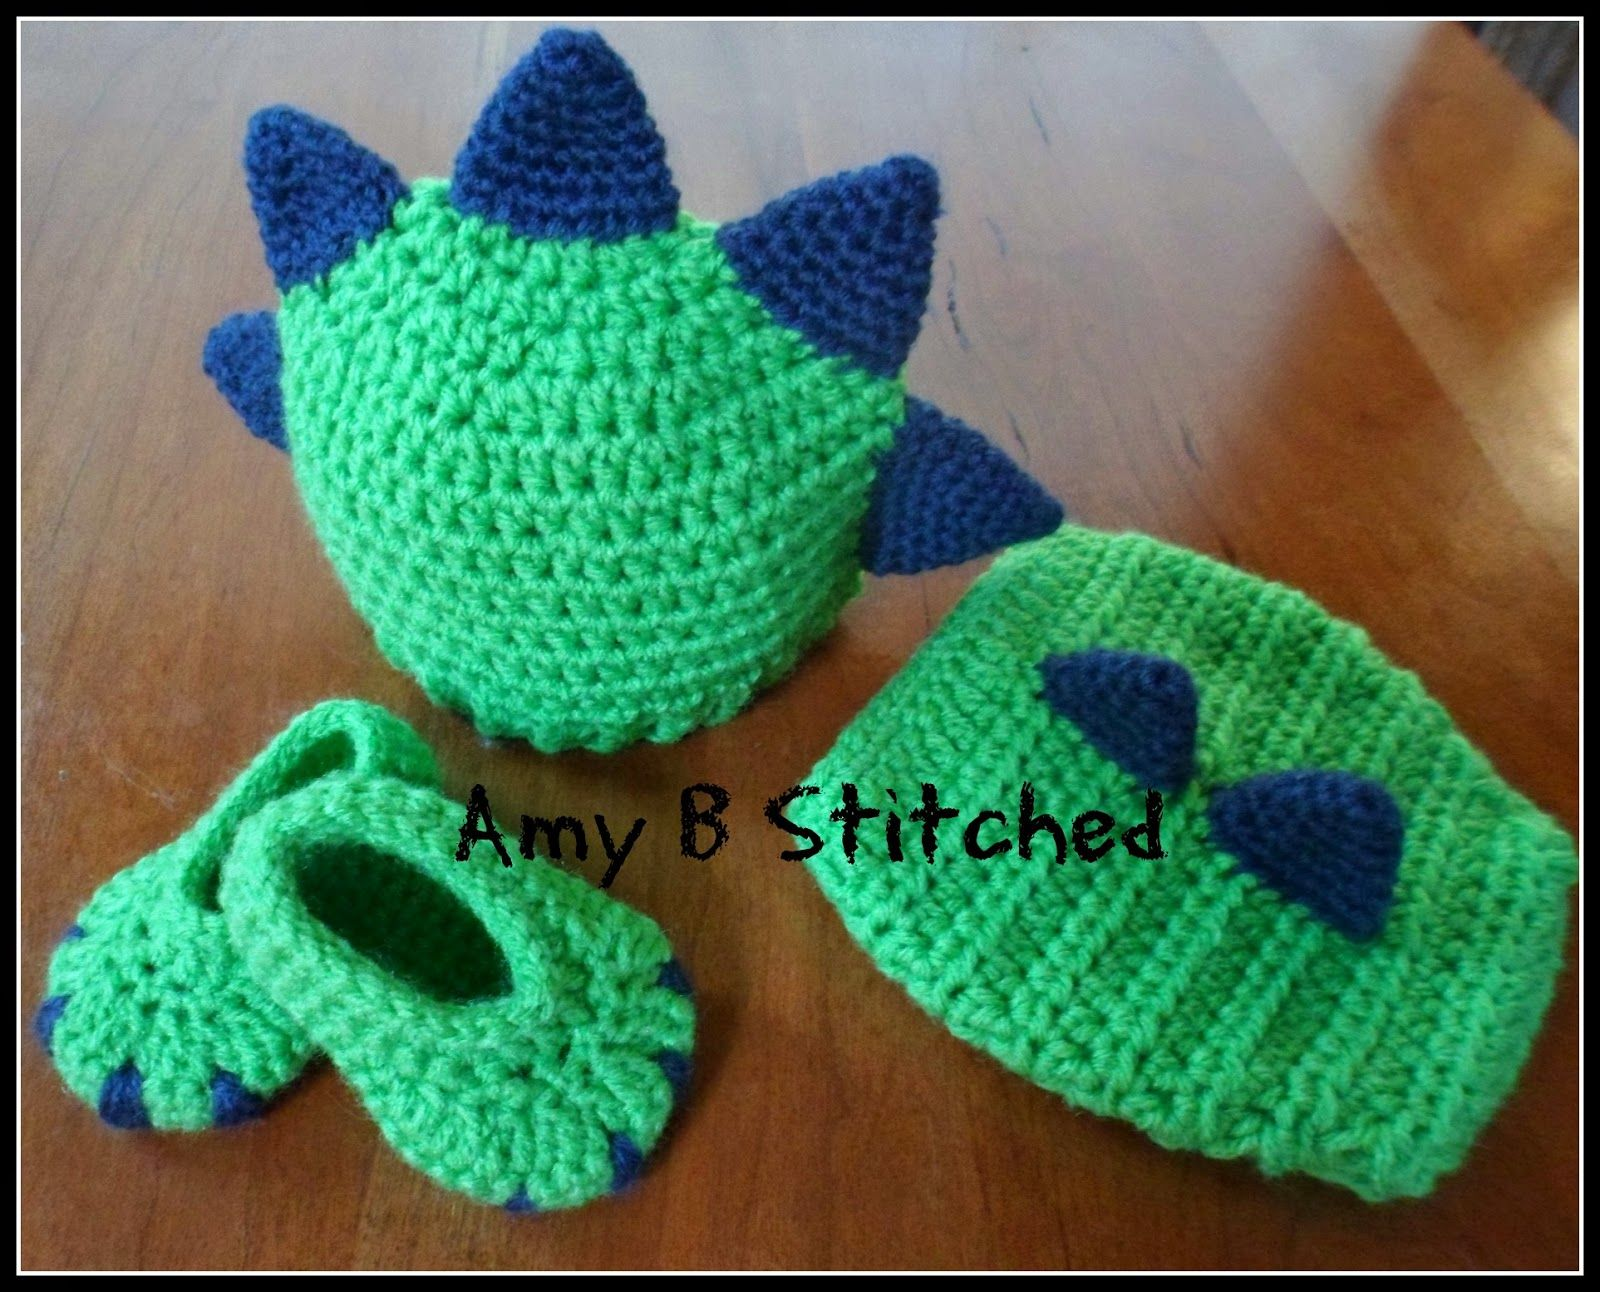 FREE PATTERN.....A Stitch At A Time for Amy B Stitched ...